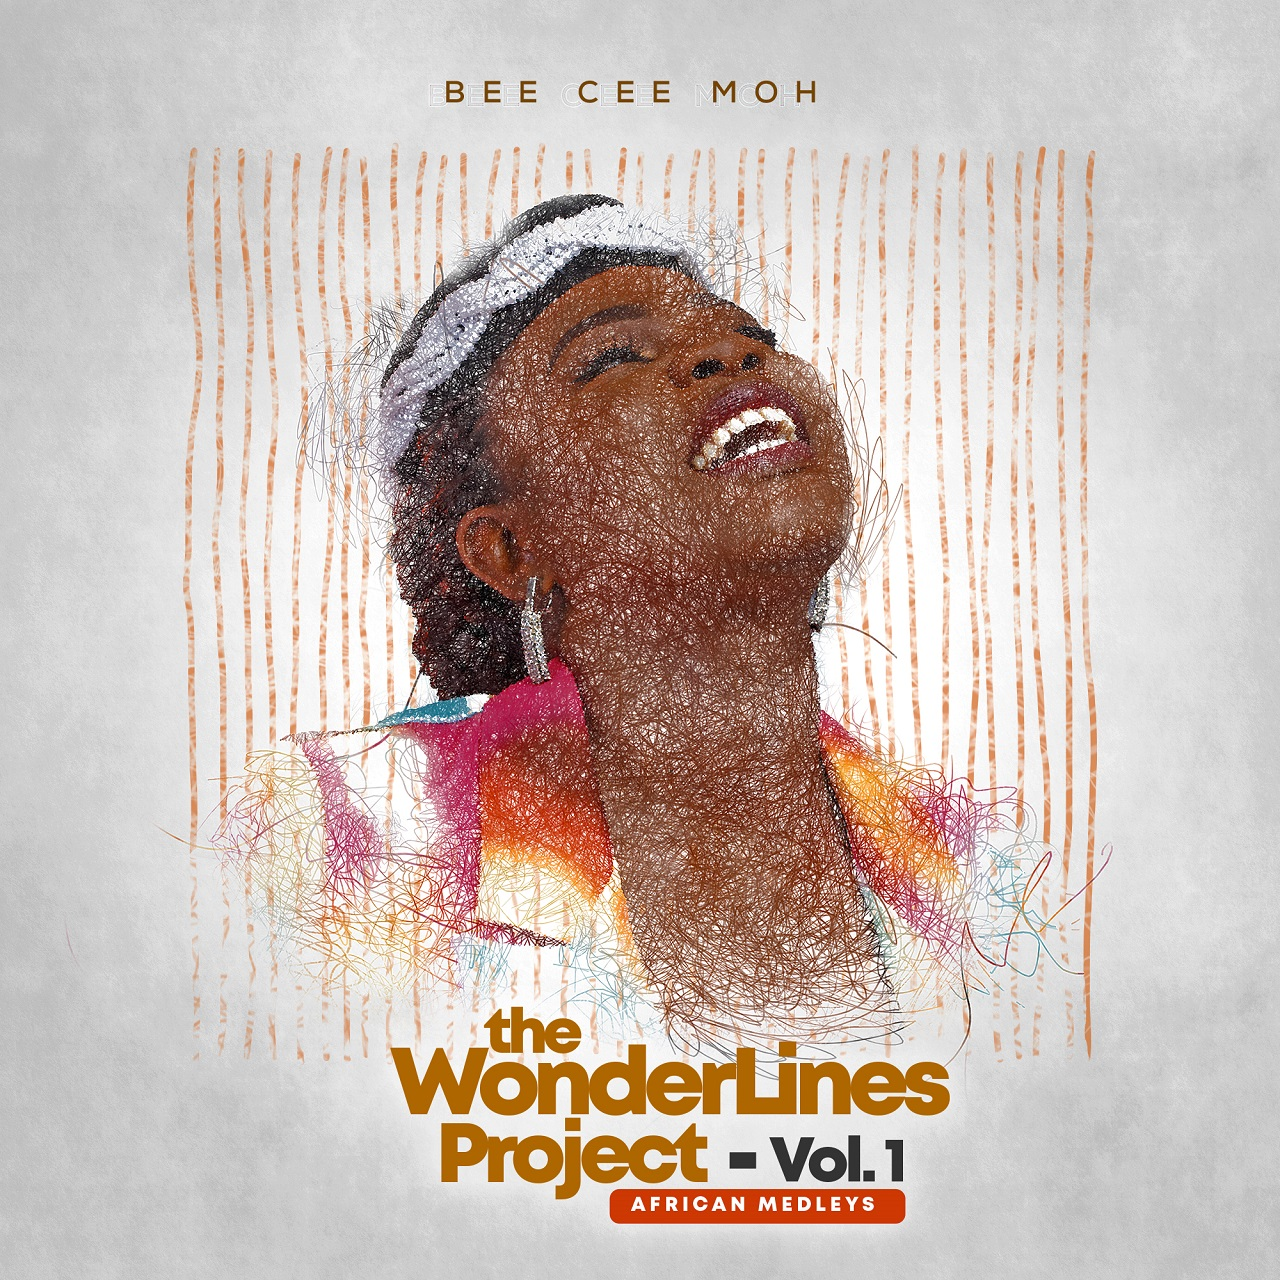 Bee Cee Moh - The WonderLines Project (Vol. 1) tracklist